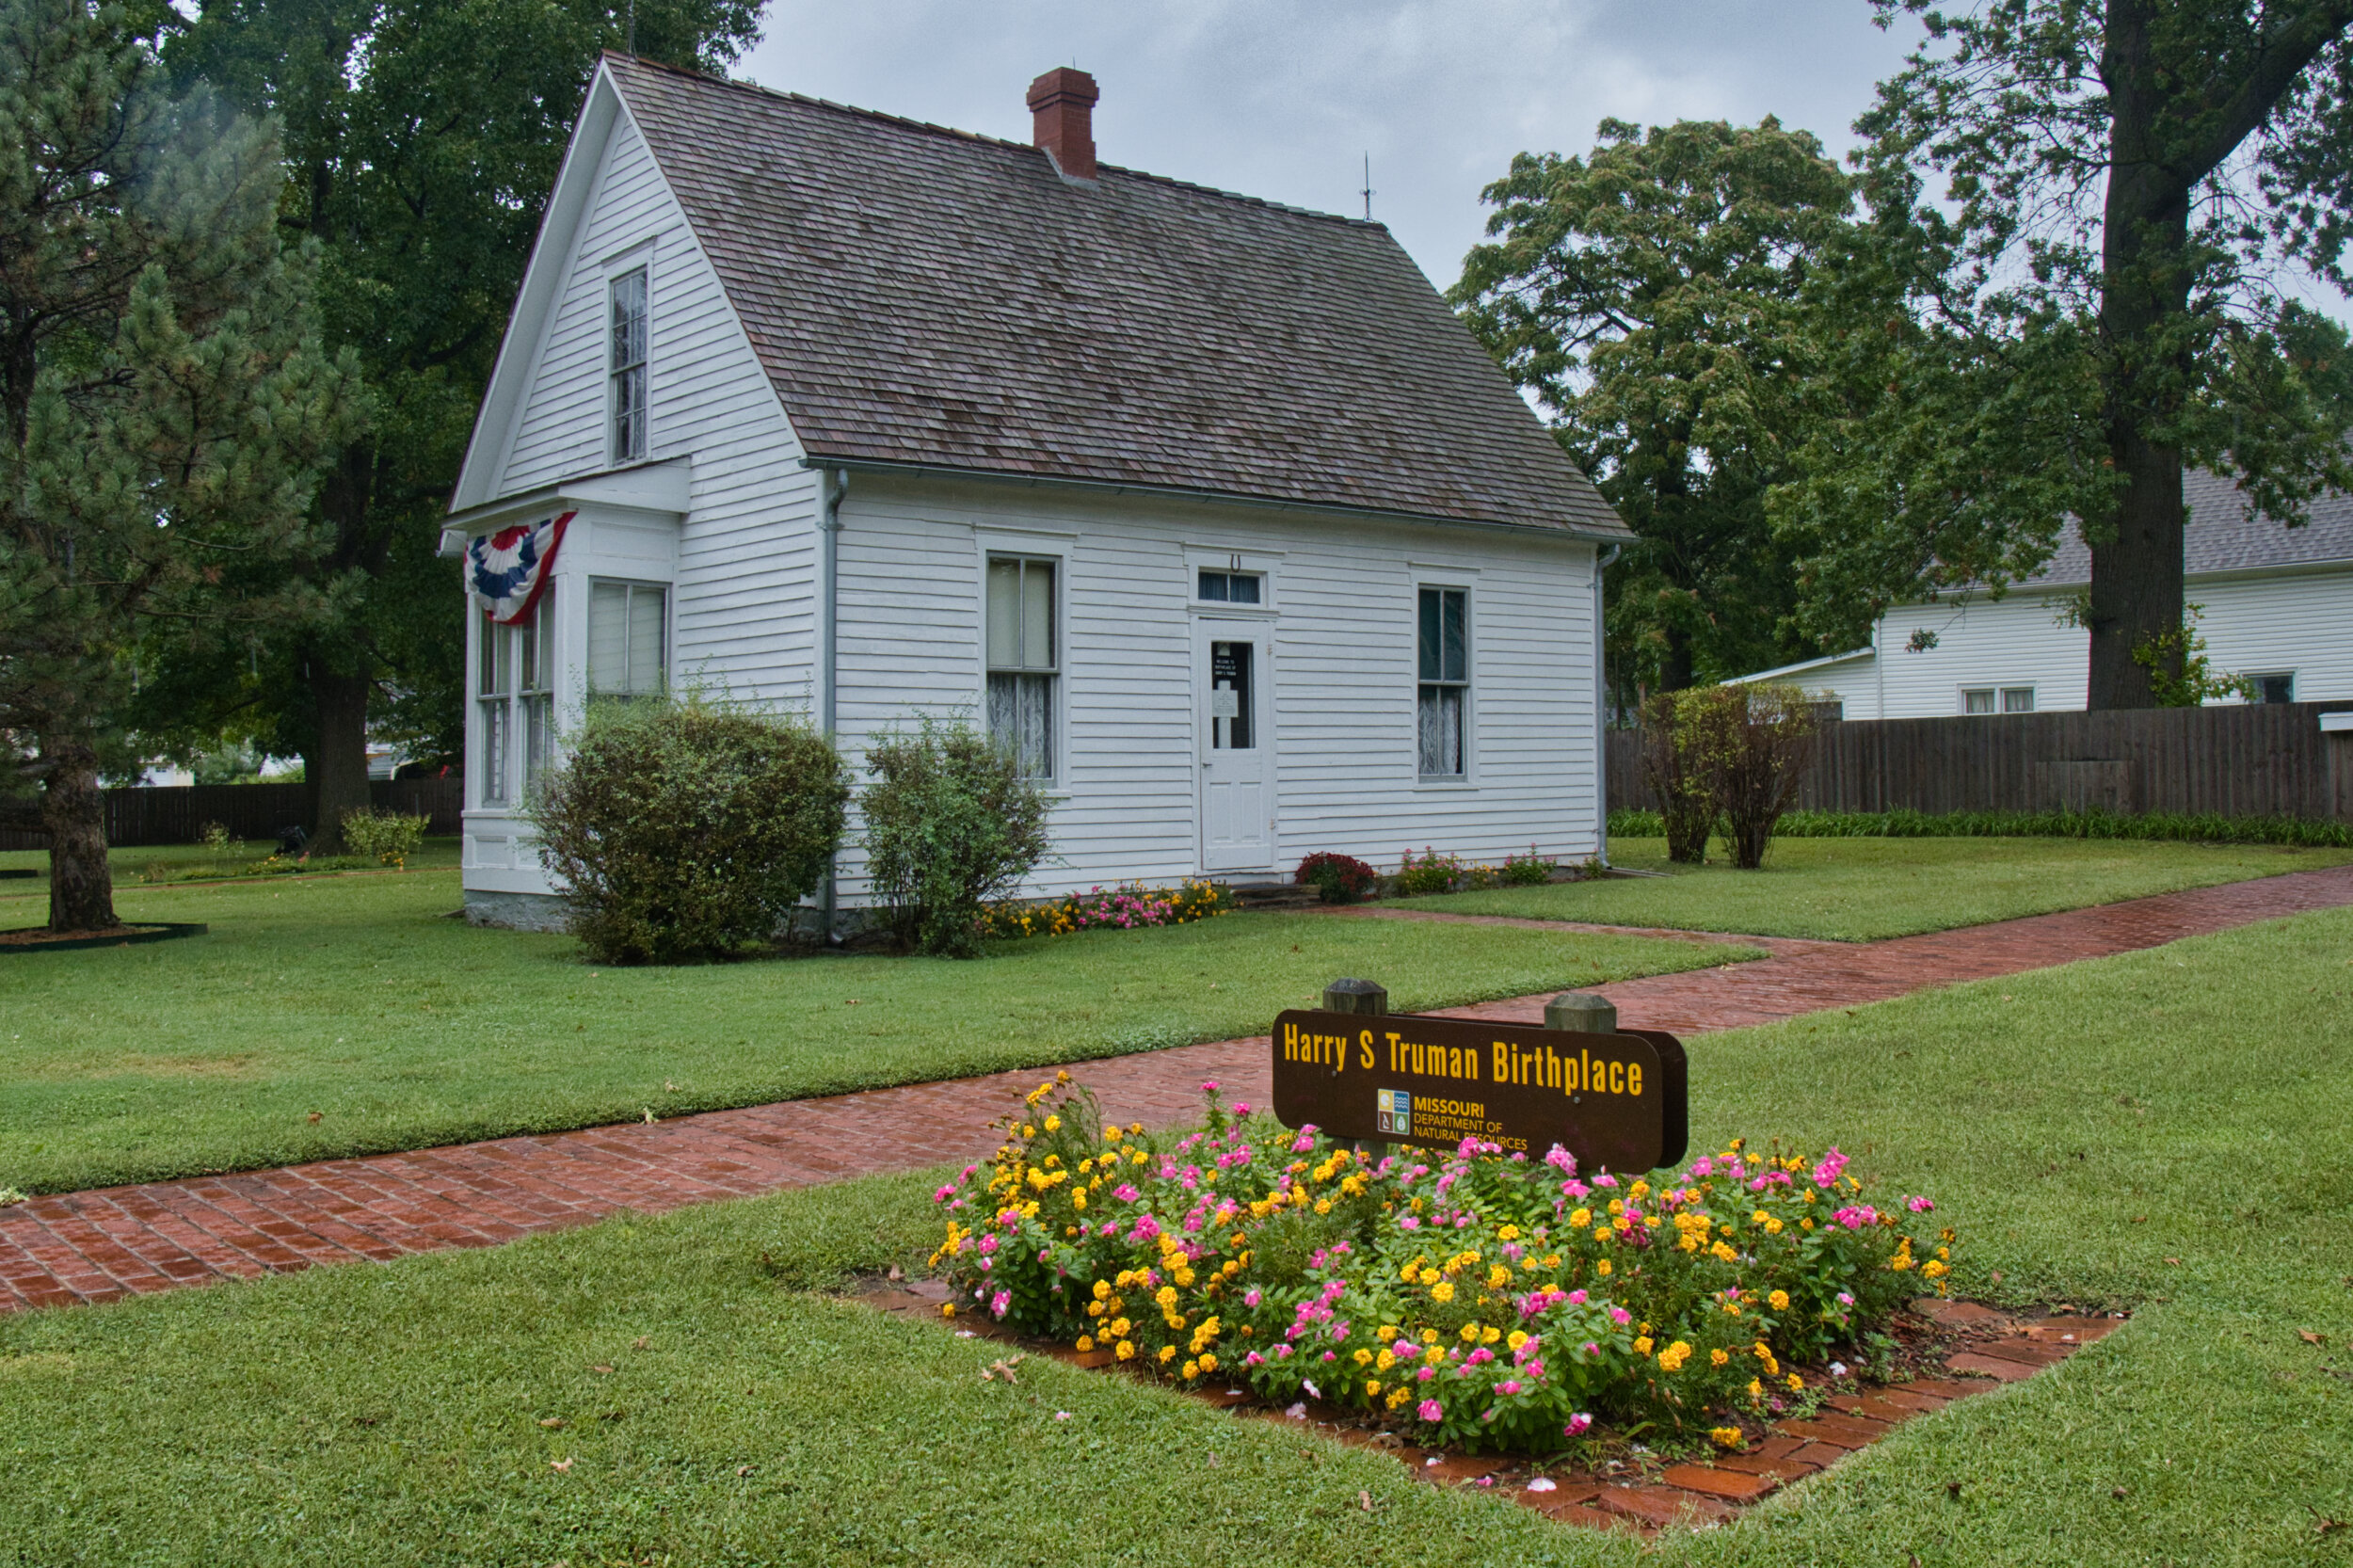 Here is a bonus photo from a couple of days ago when we stopped to see Harry S Truman's birthplace.